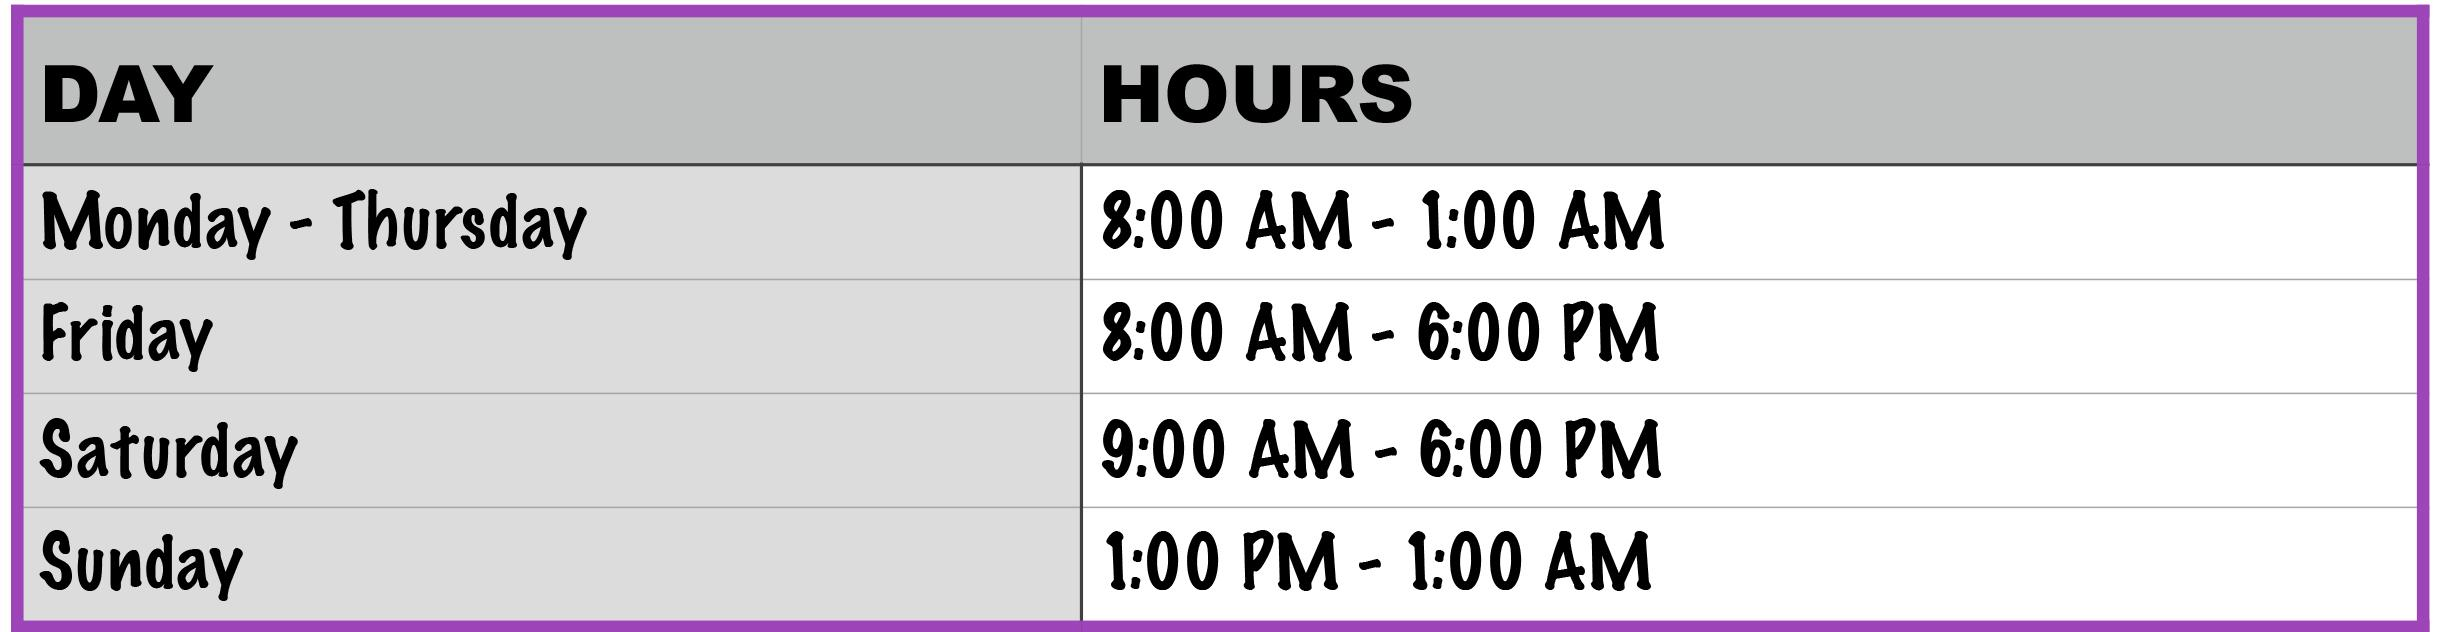 EXTENDED HOURS GRAPH